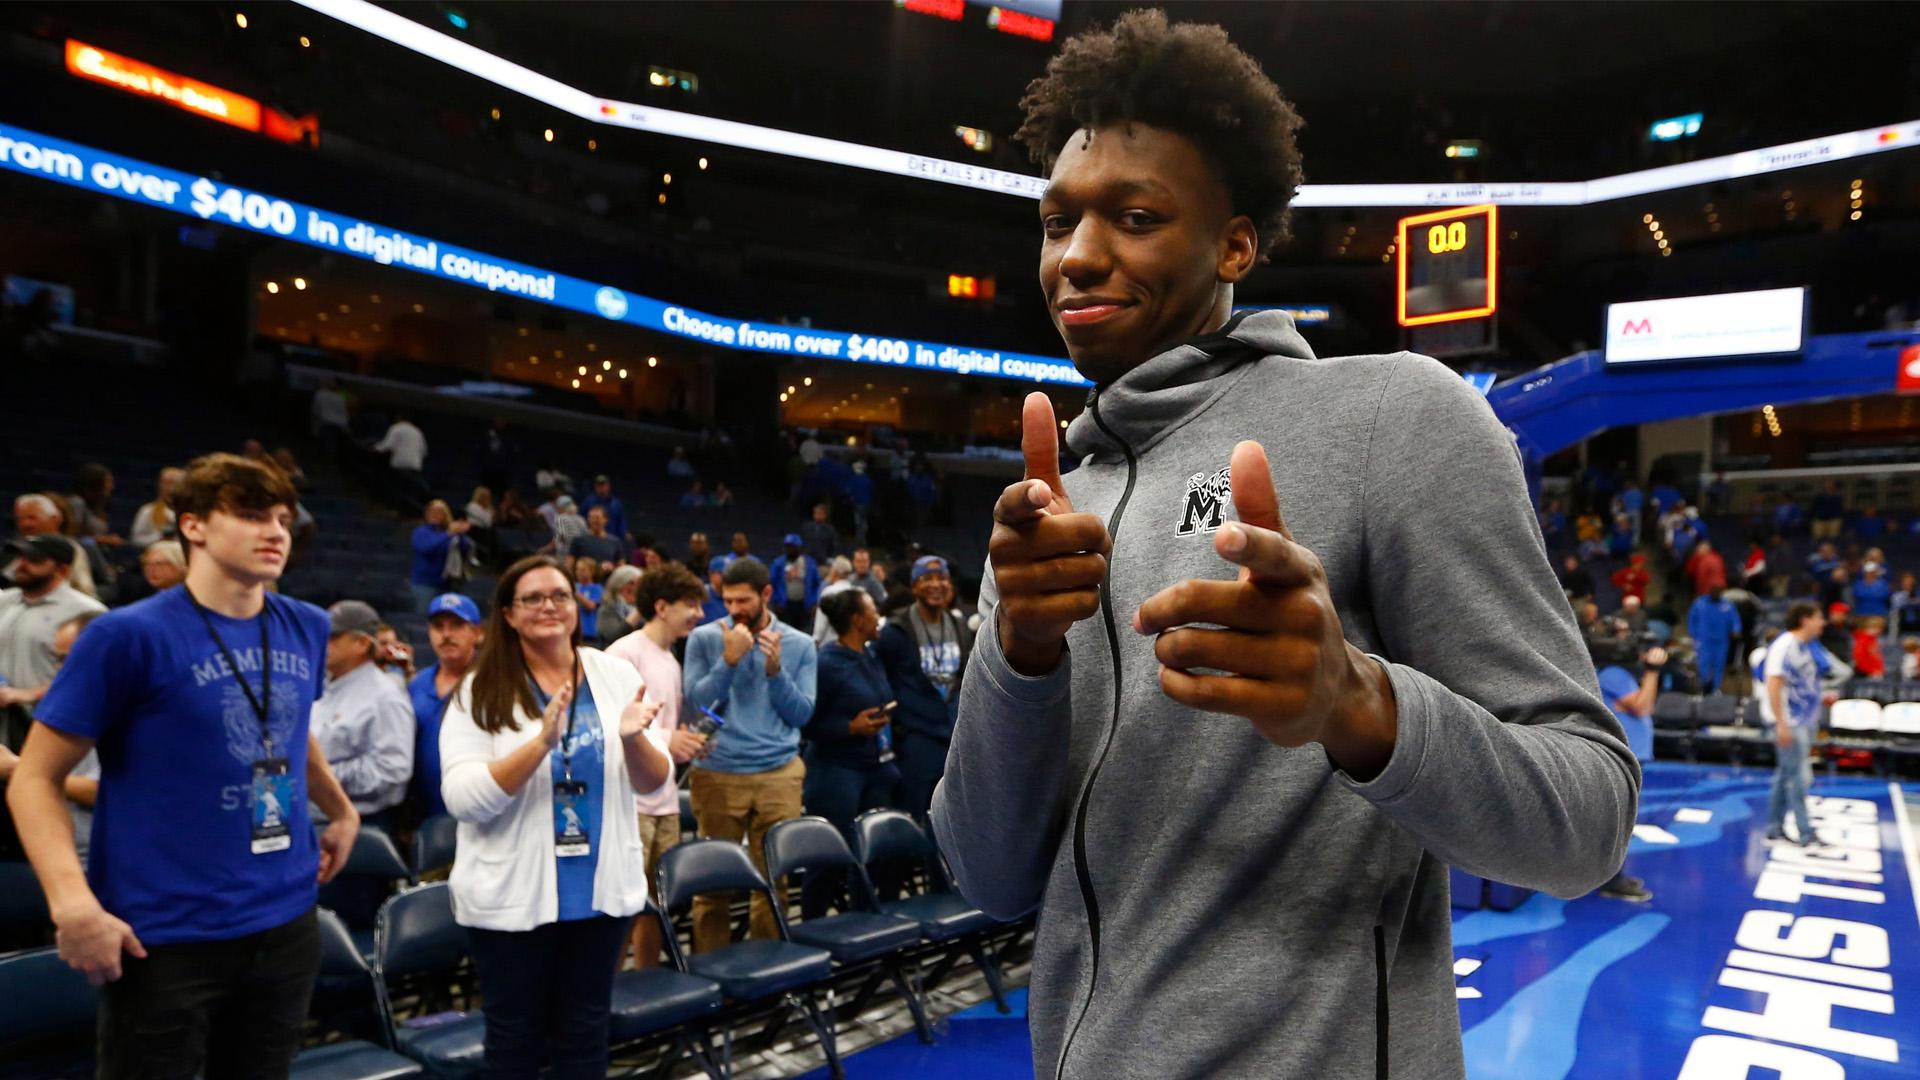 NBA Draft 2020: Four prospects Warriors could take with No. 1 pick